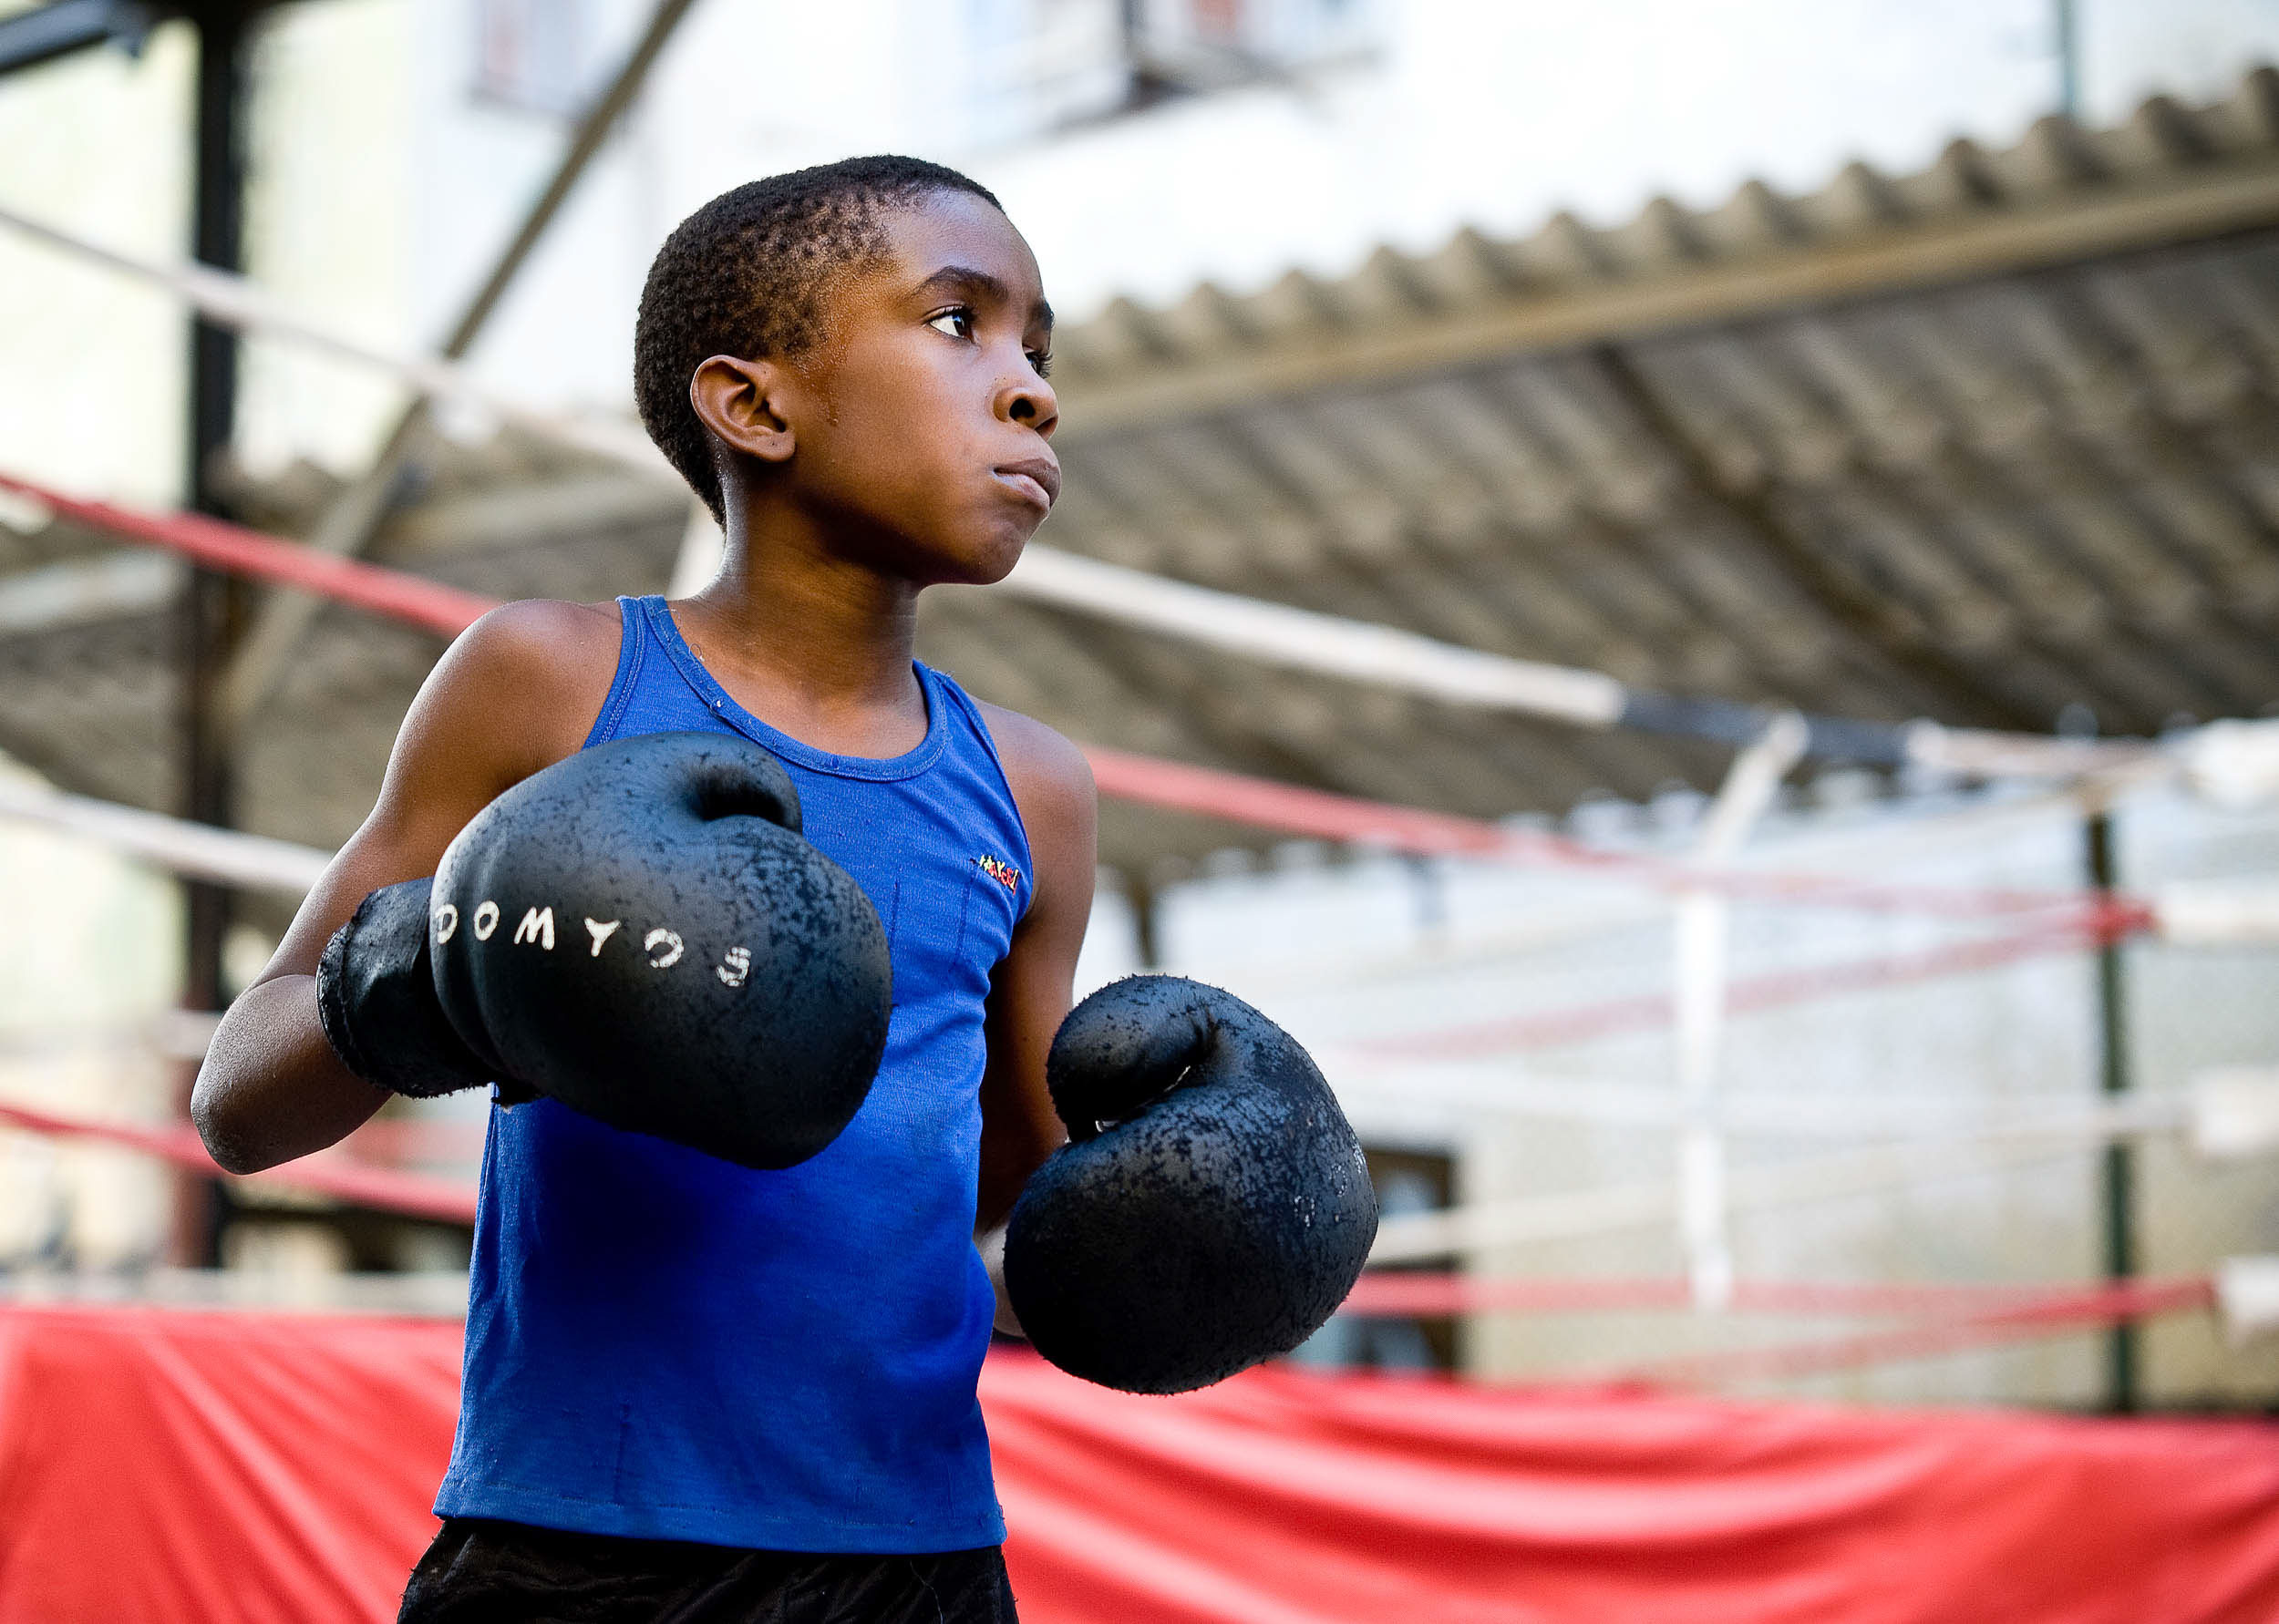 boxer-boy-training-cuban-sport-ring-boxing-havana-cuba